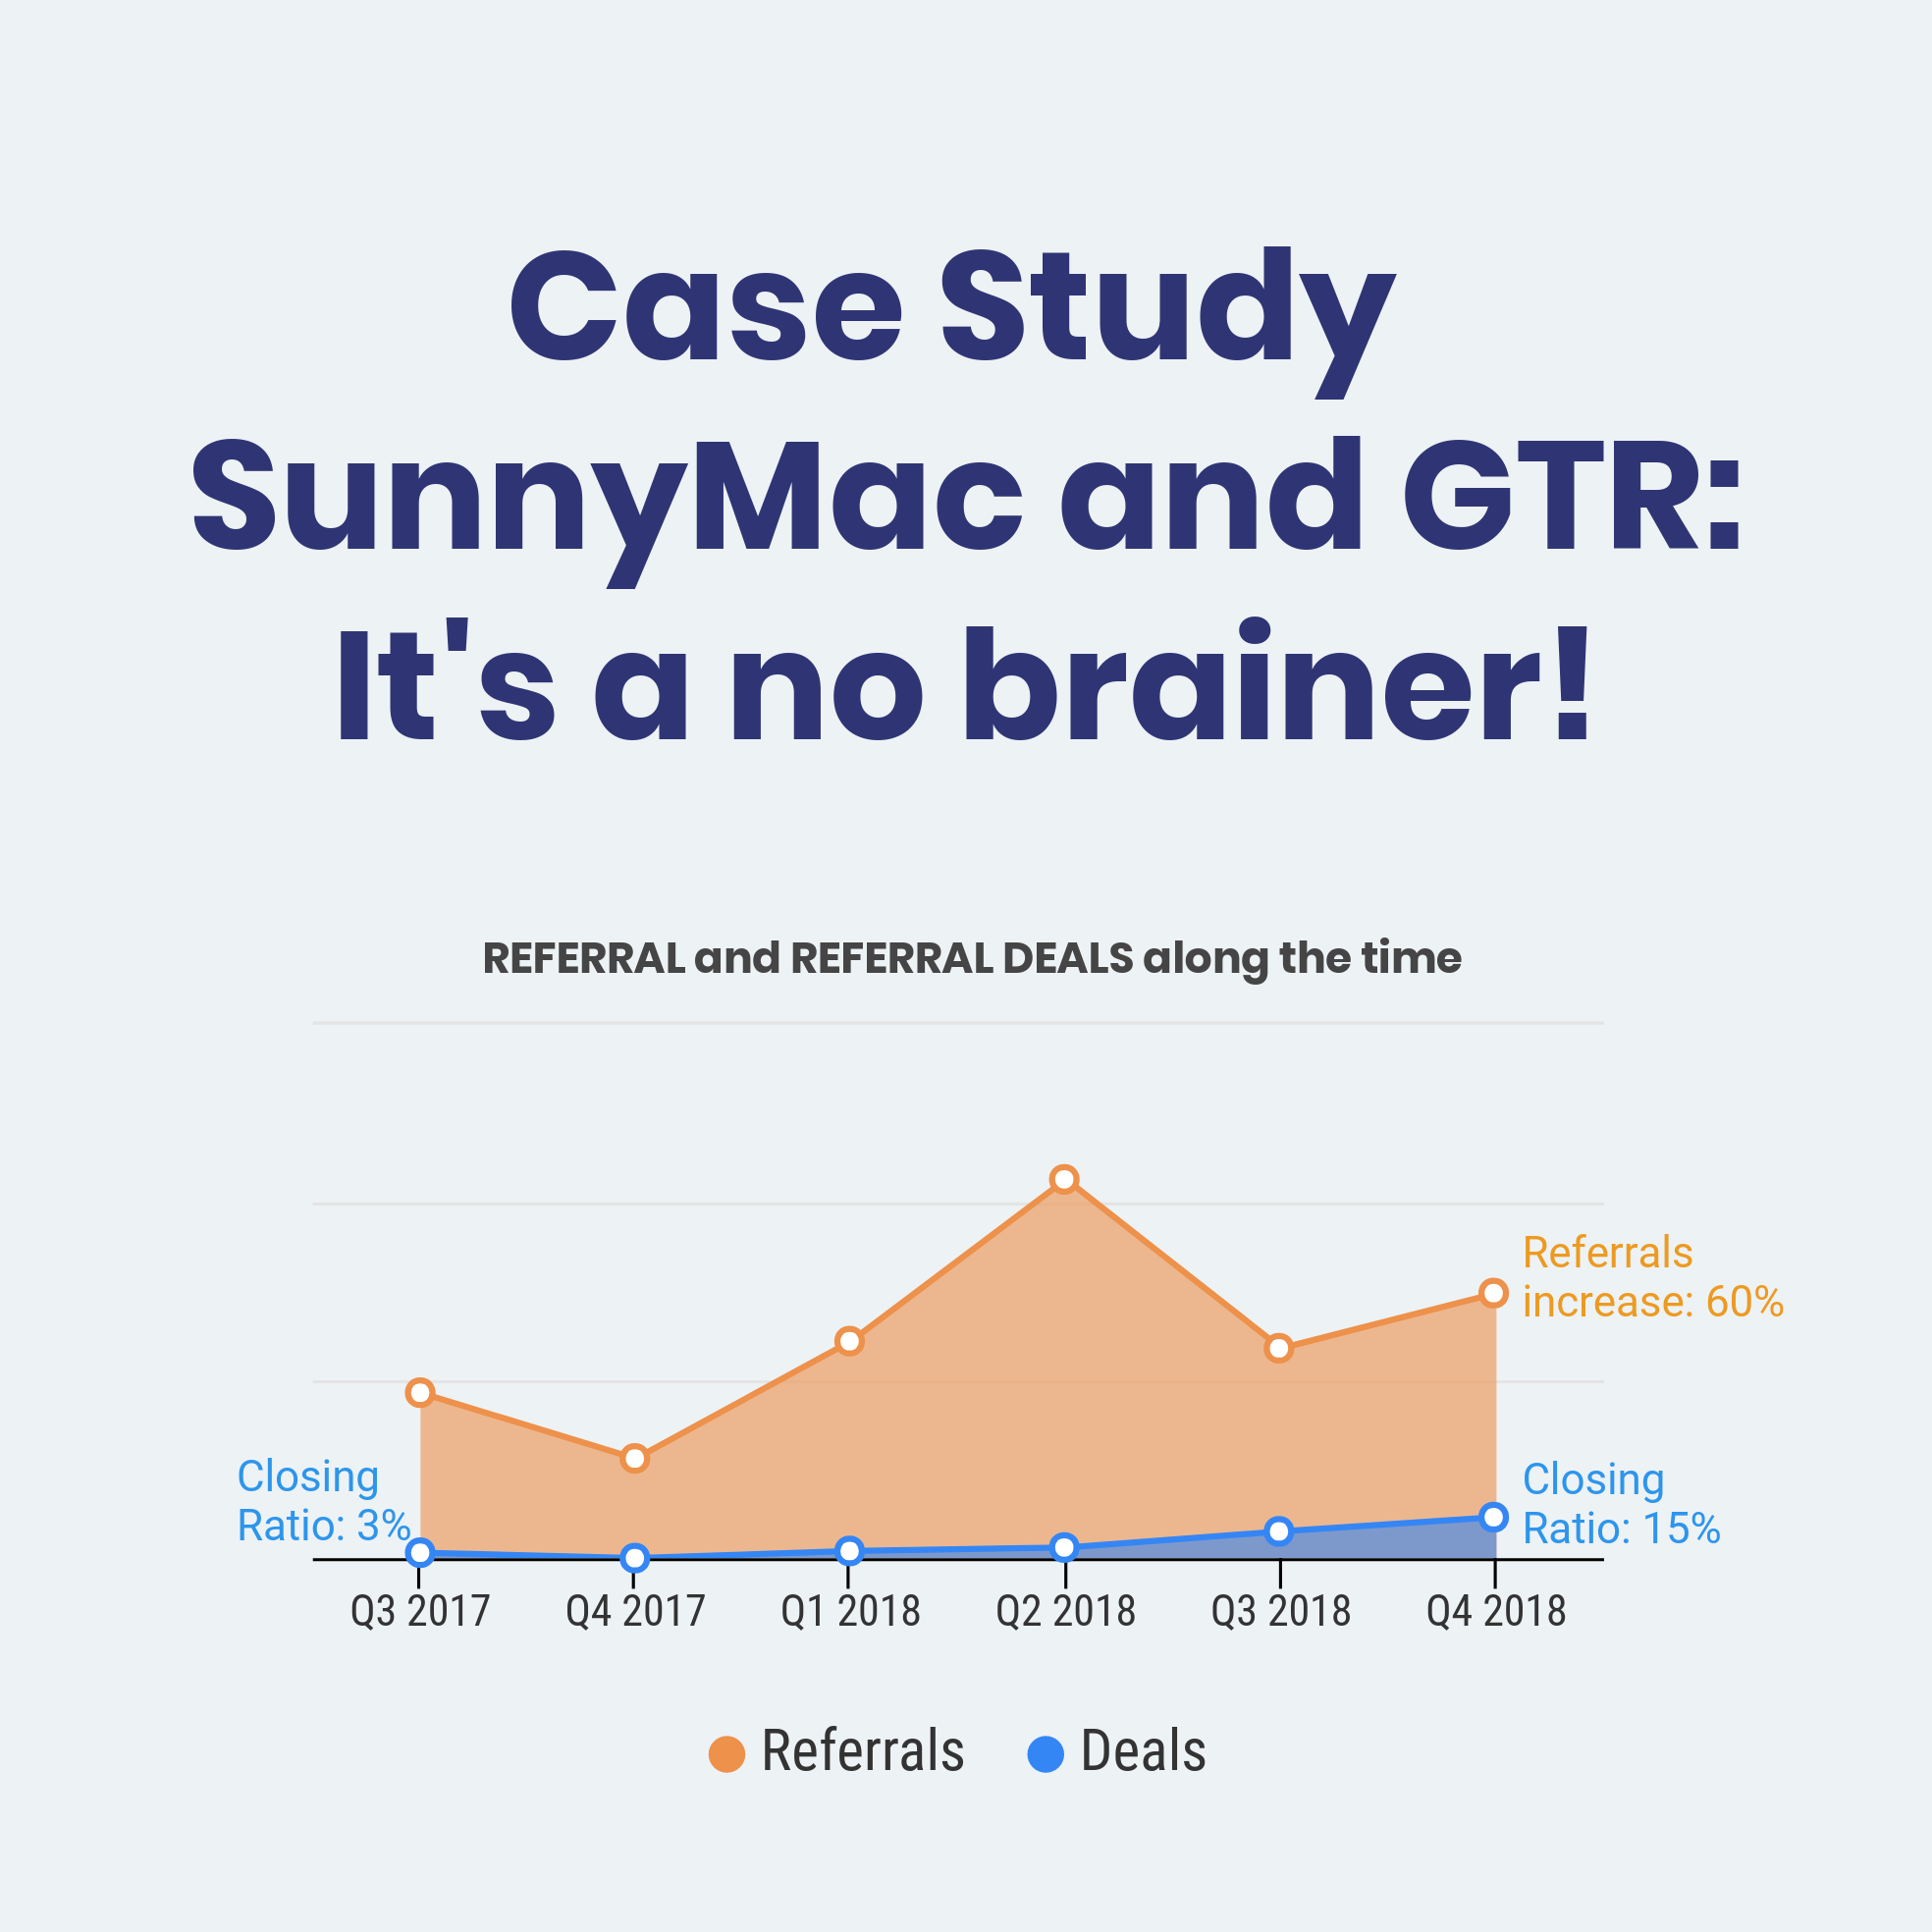 SunnyMac Solar Referral Program Case Study